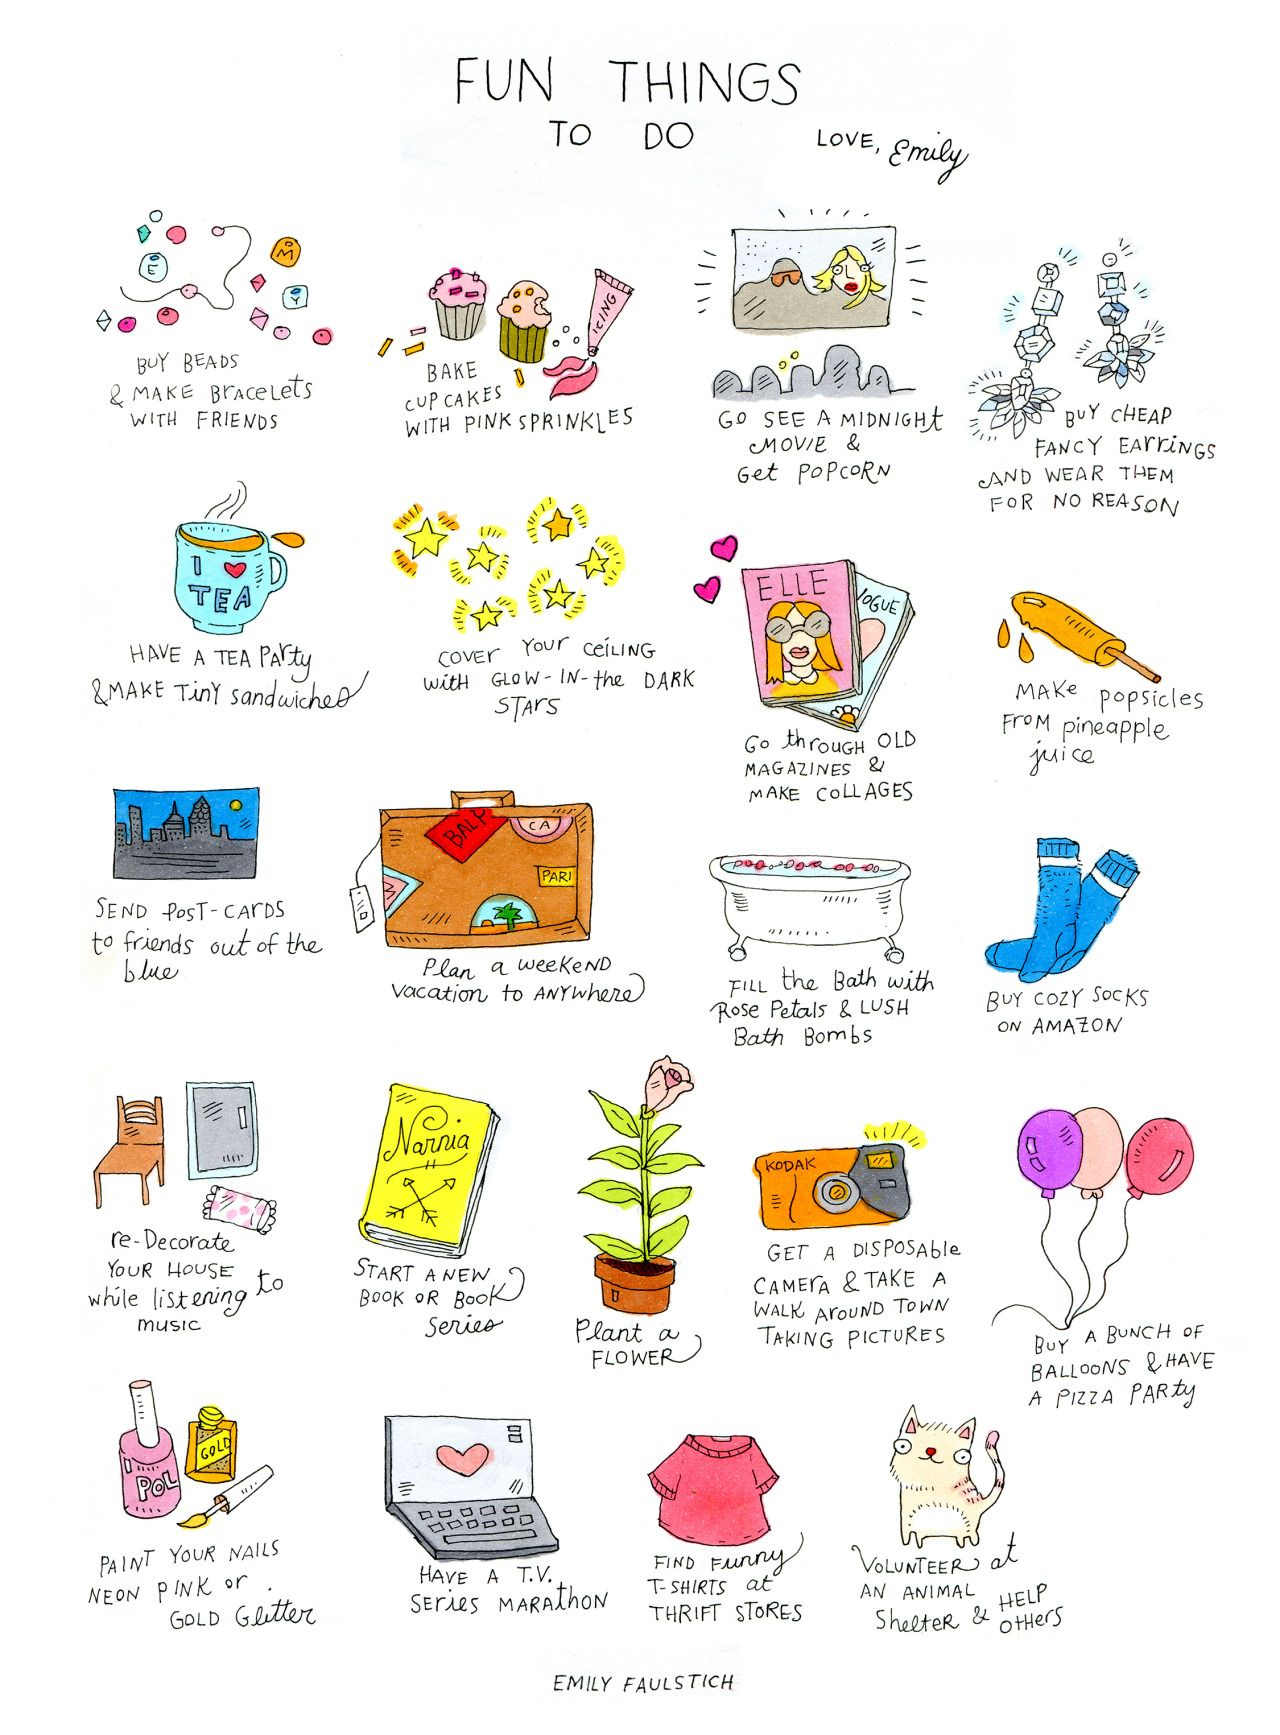 coconut - Here is a List of Fun Things To Do, Love Emily...